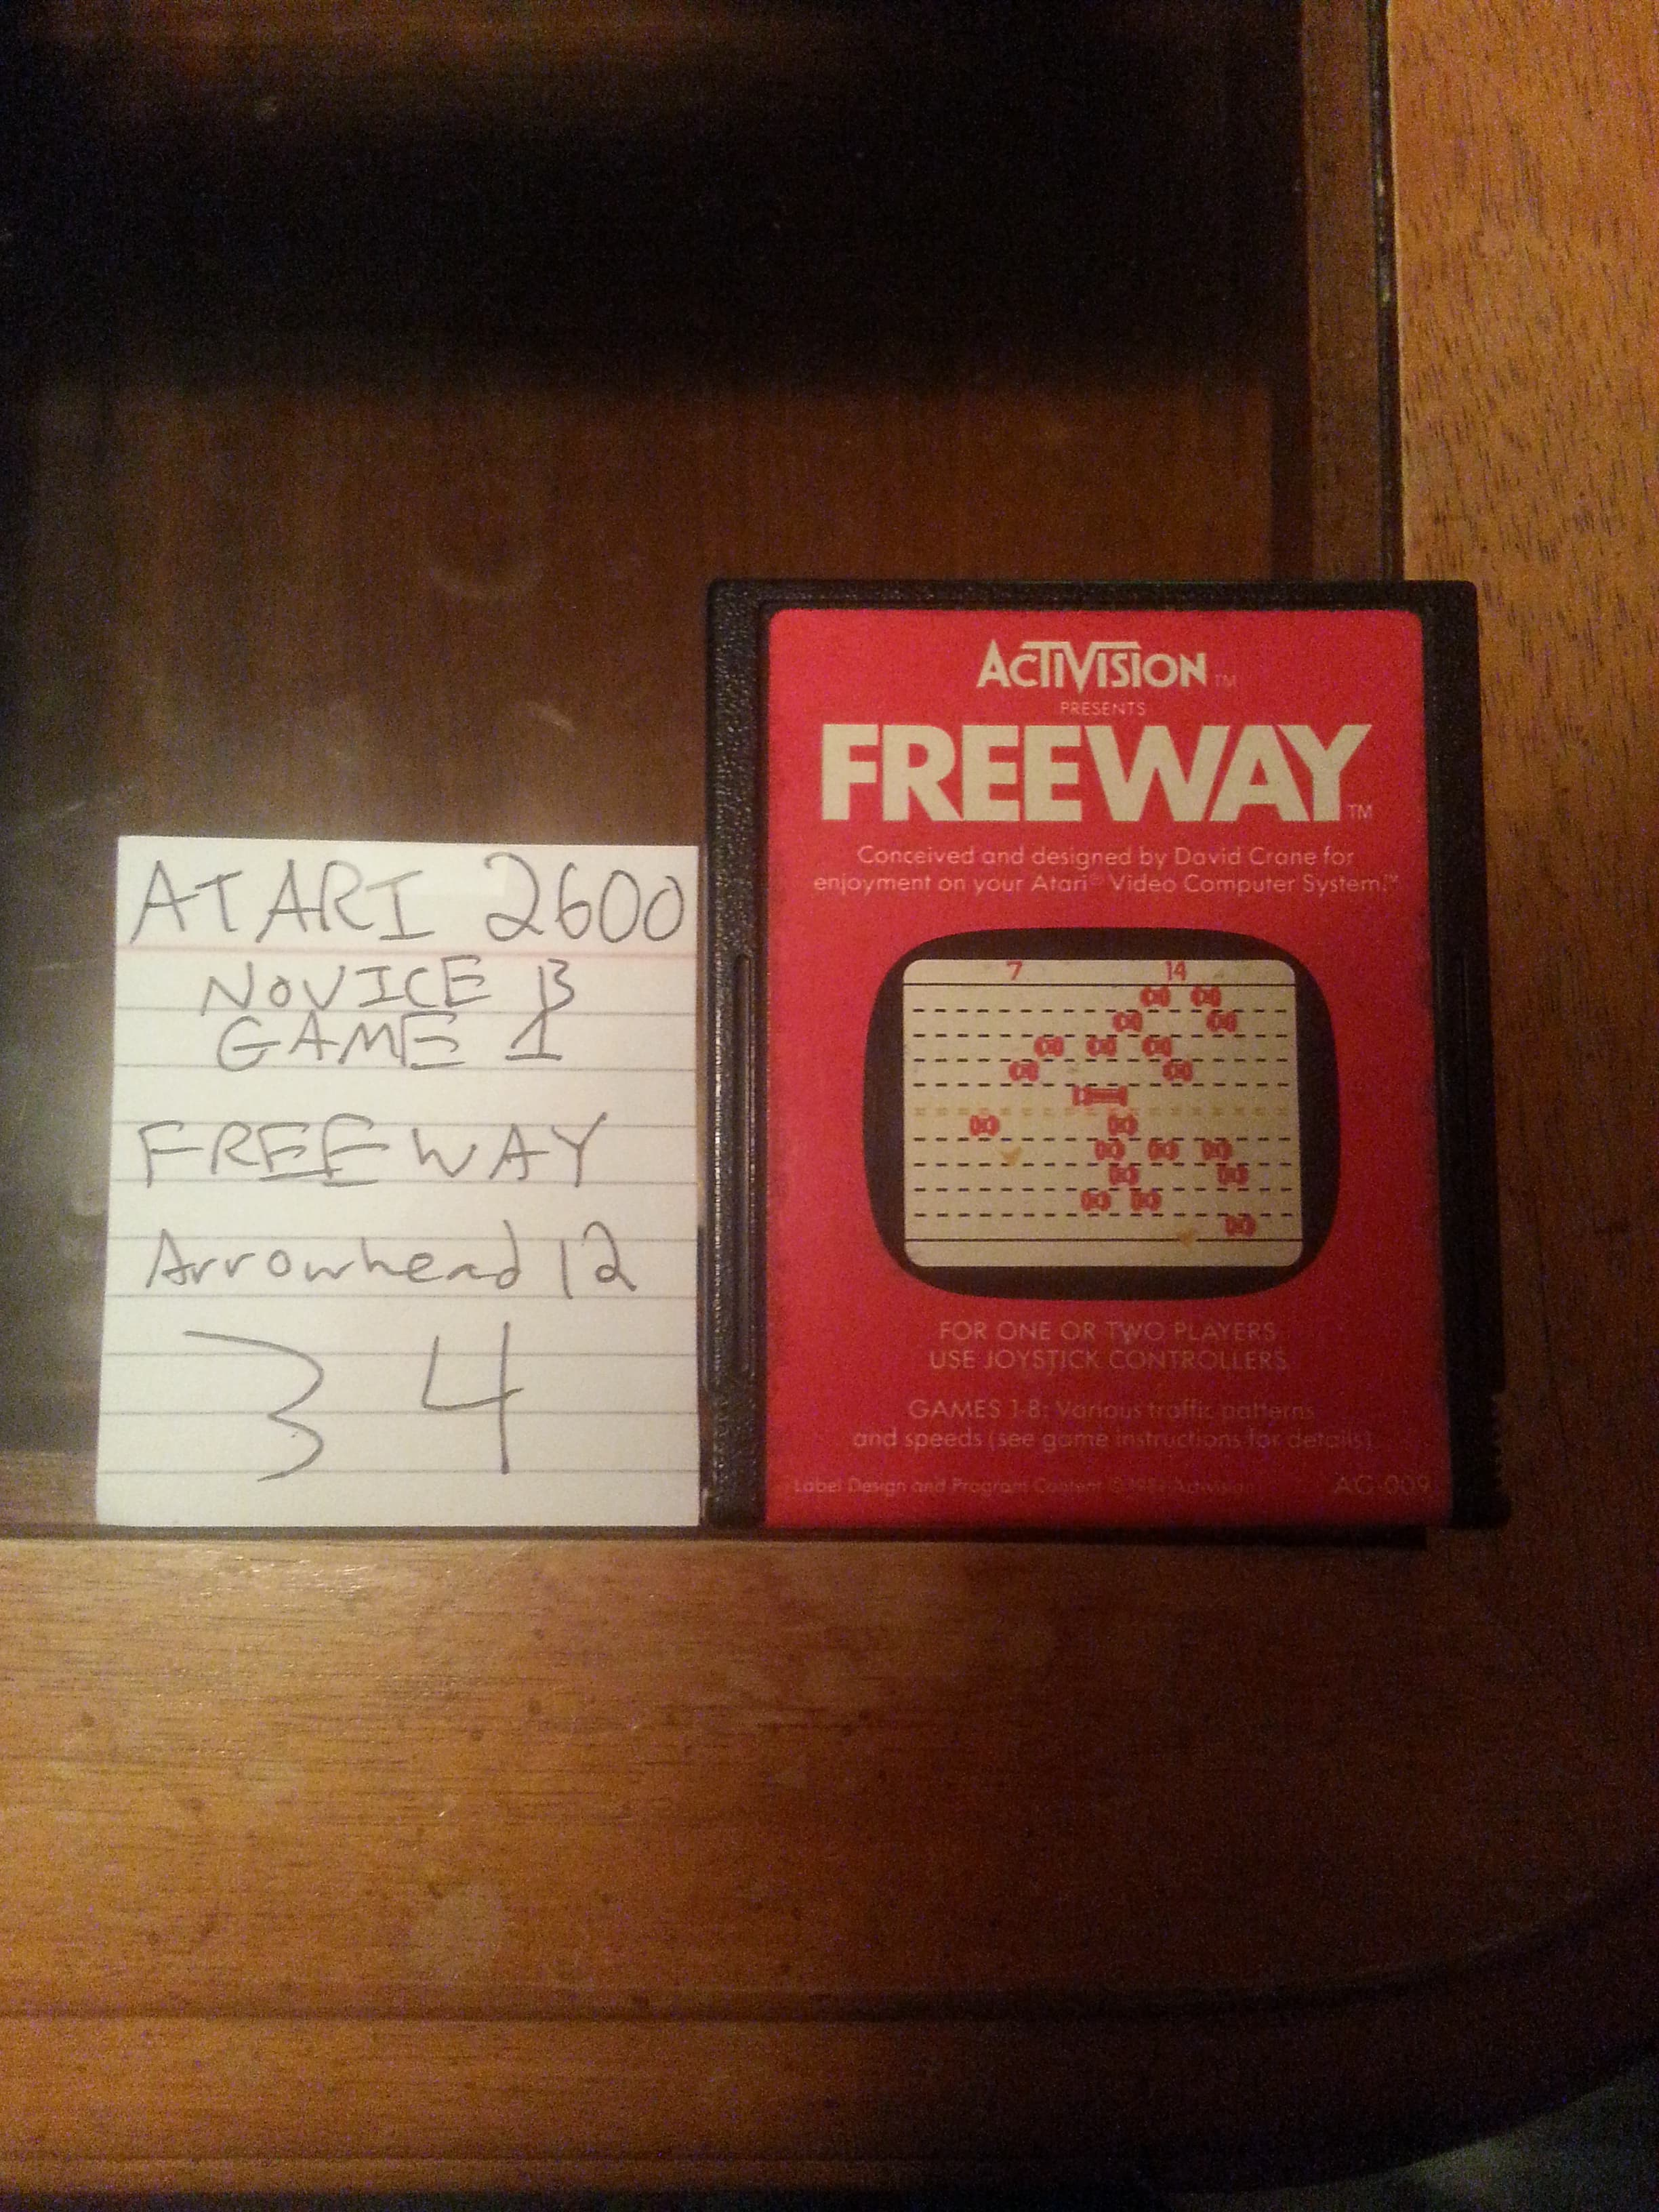 Arrowhead12: Freeway: Game 1 (Atari 2600 Novice/B) 34 points on 2018-10-02 02:39:41